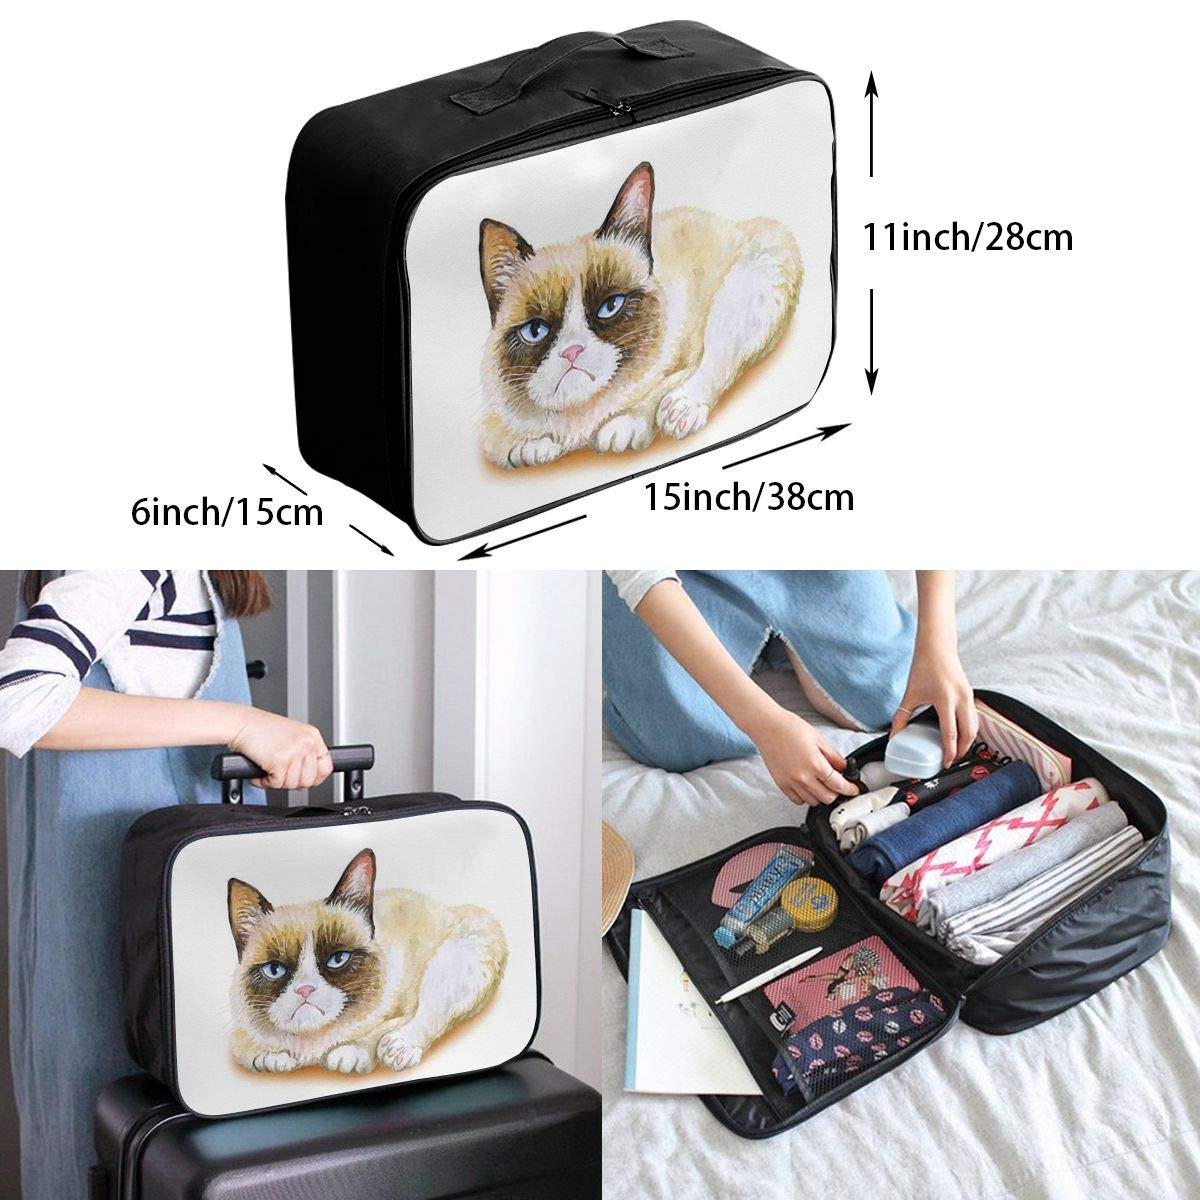 Grumpy Siamese Cat Angry Paws Travel Lightweight Waterproof Foldable Storage Carry Luggage Duffle Tote Bag Large Capacity In Trolley Handle Bags 6x11x15 Inch